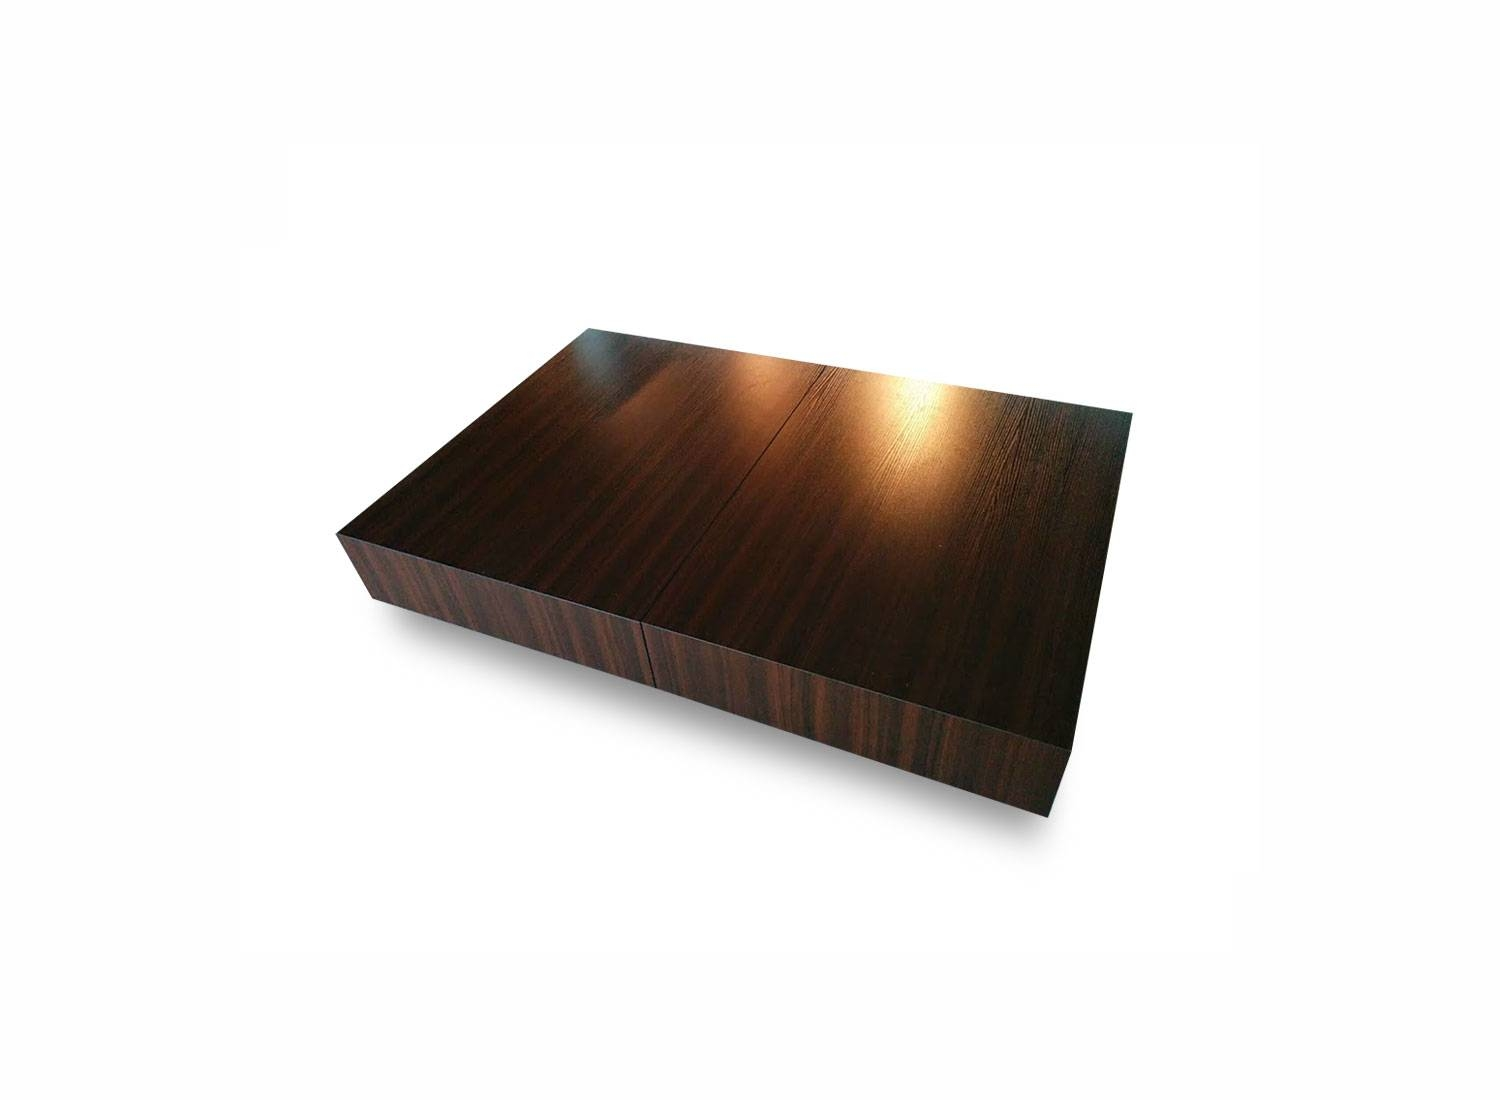 Coffee Table: Wonderful Low Profile Coffee Table Design Ideas Low inside Low Square Wooden Coffee Tables (Image 8 of 30)